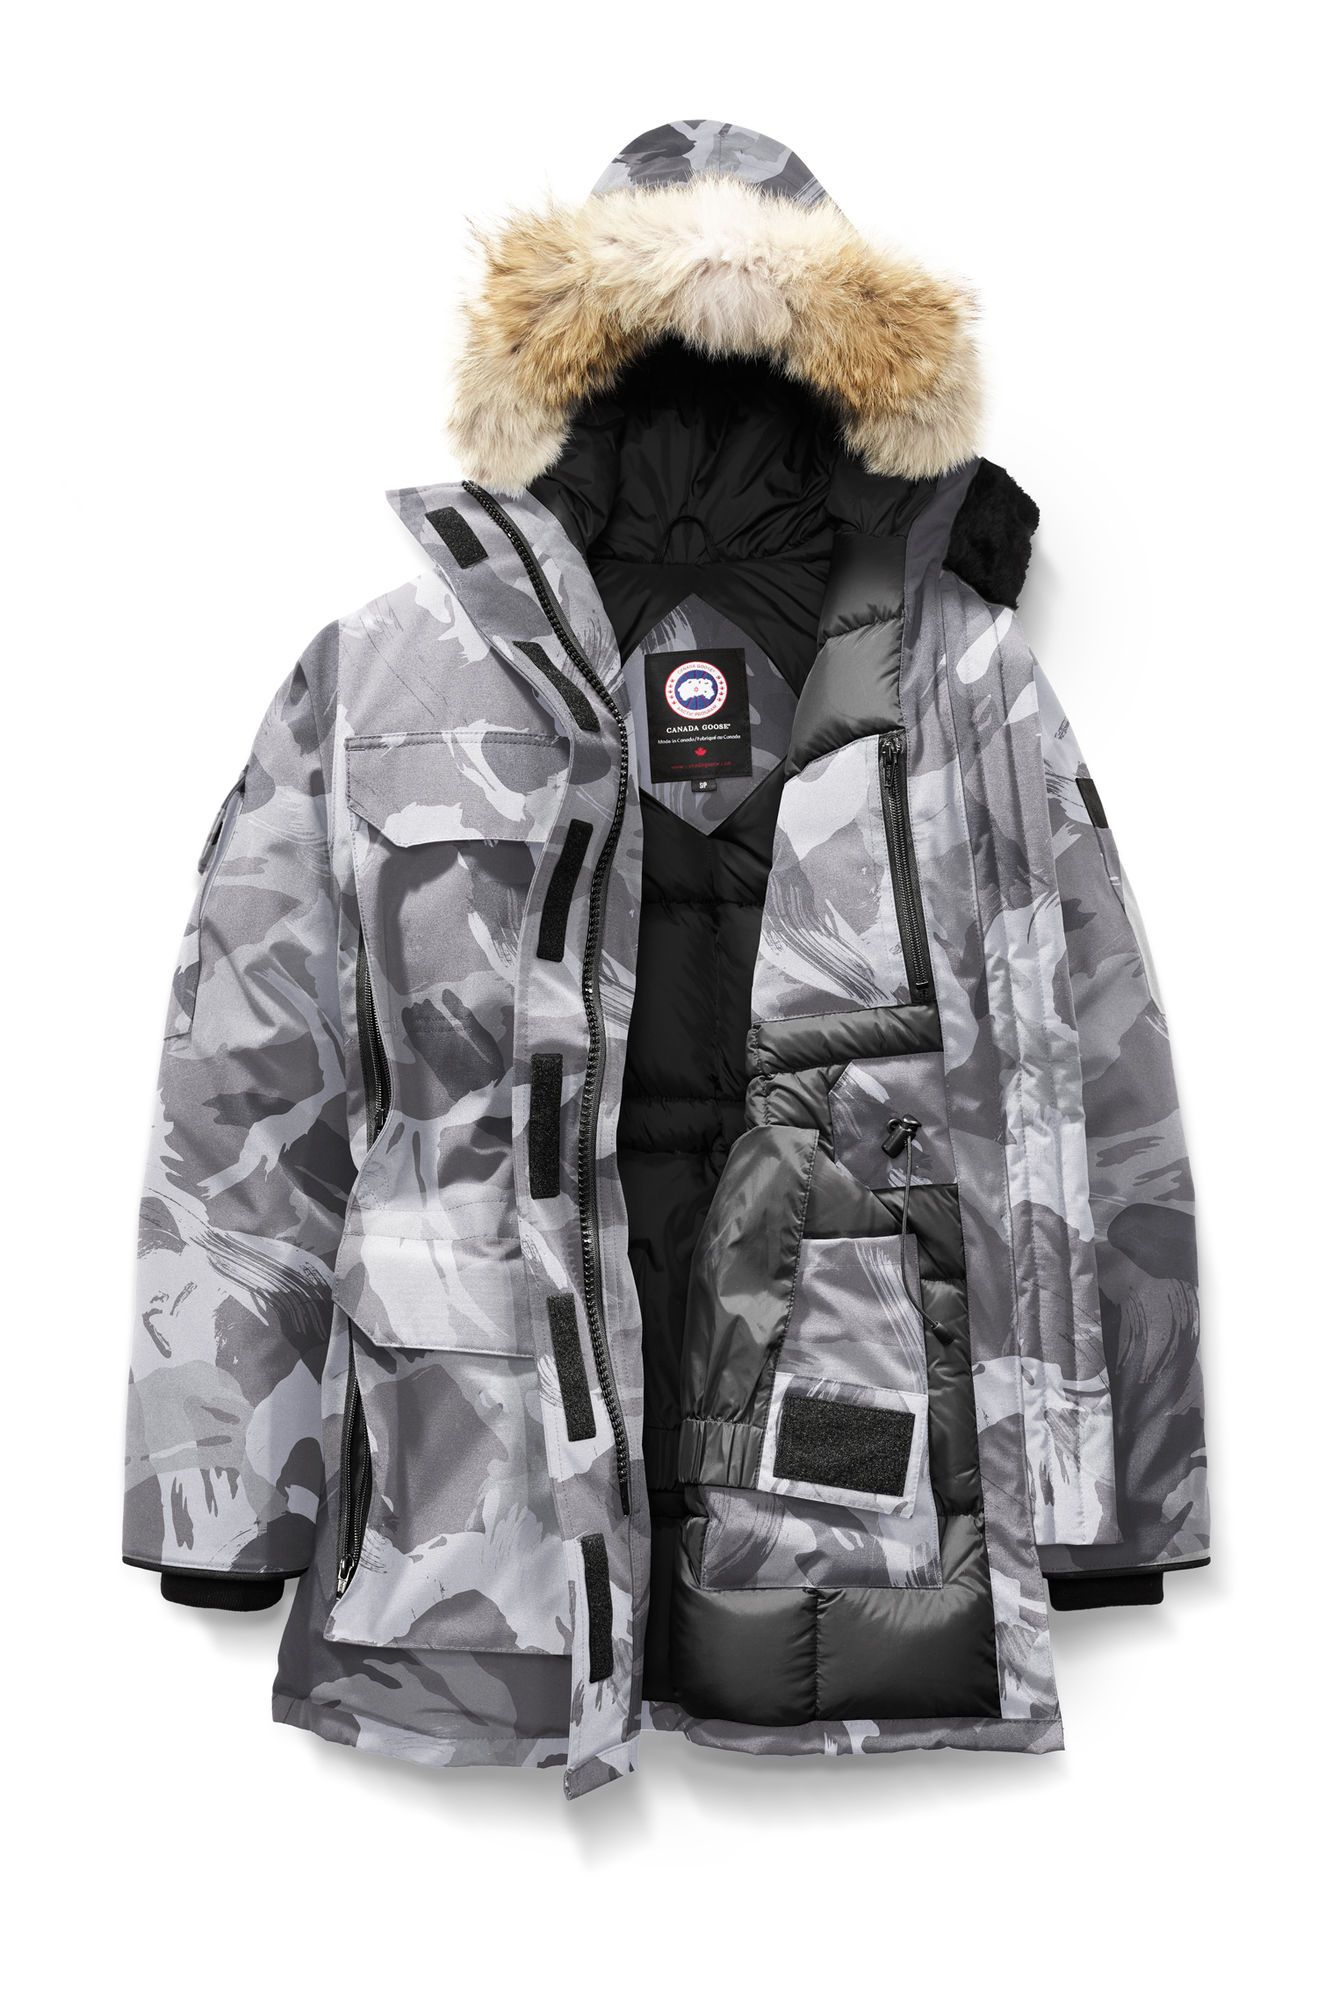 Pin by 安妮 on 2018大衣3 | Pinterest | Canada goose expedition parka, Canada goose and Camo